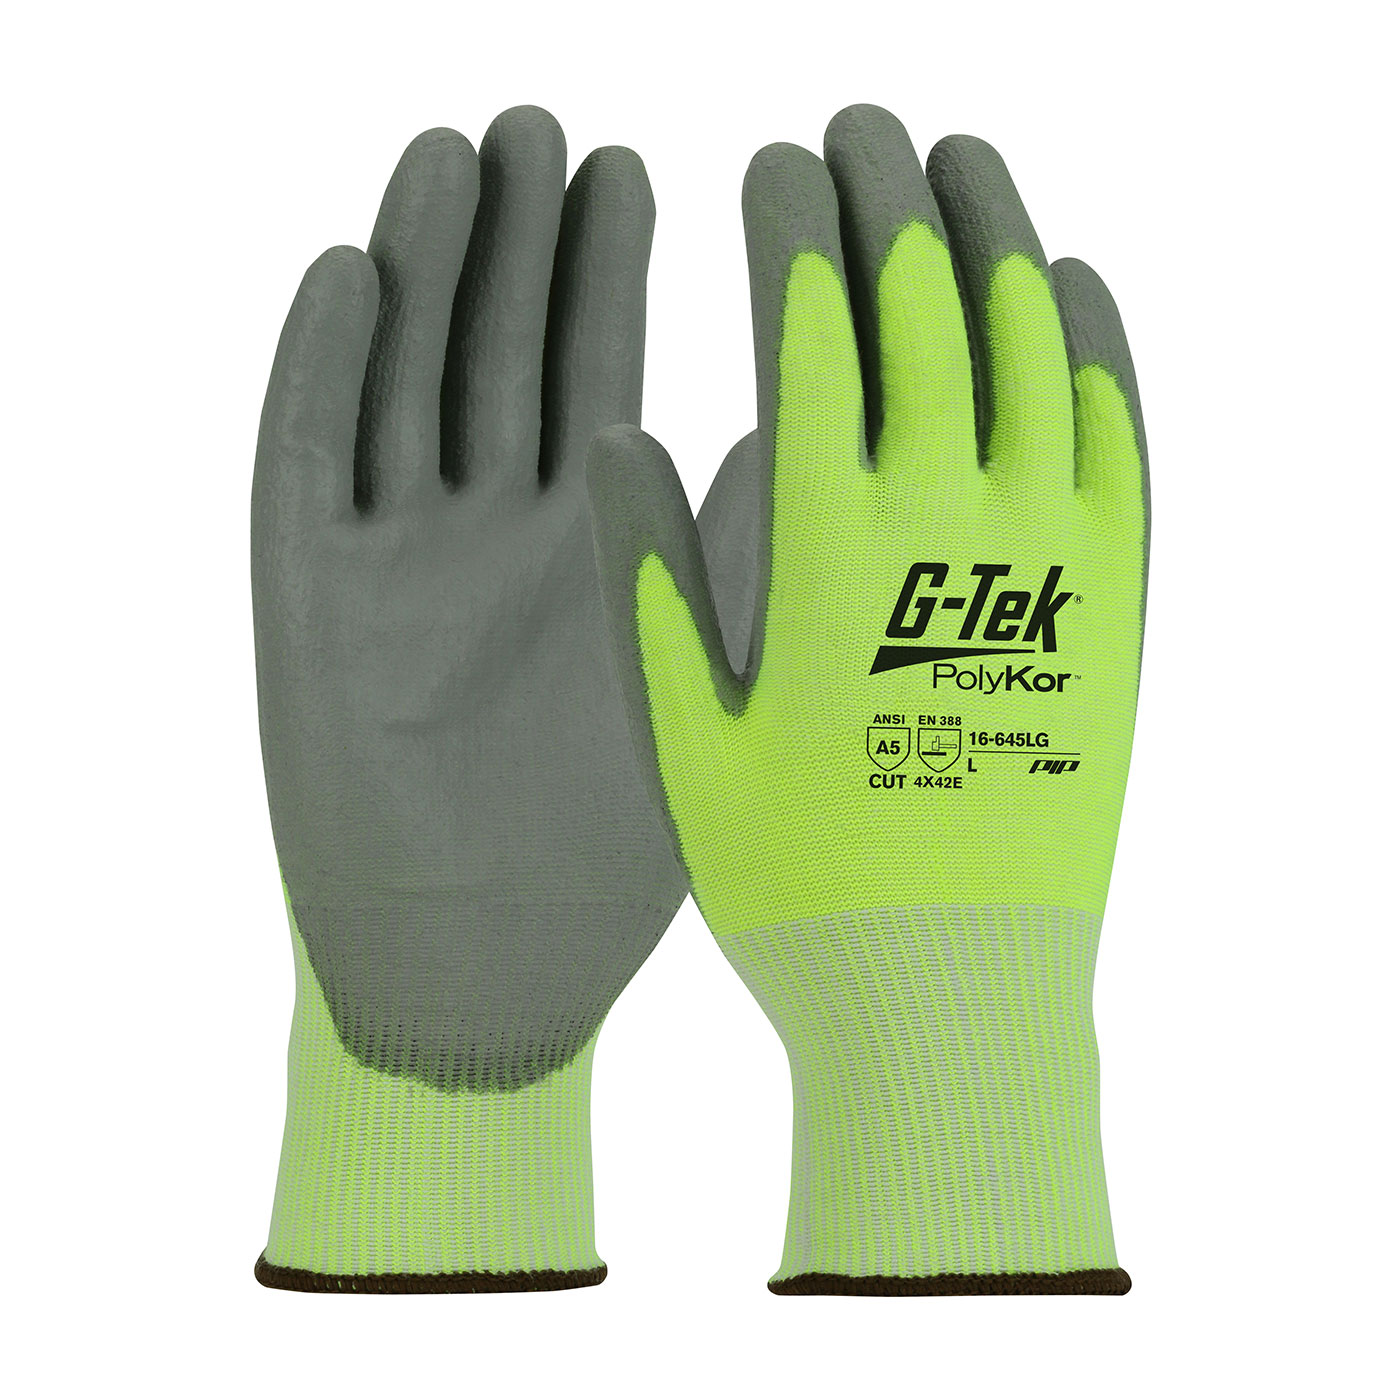 #16-645LG PIP® Hi-Viz G-Tek® PolyKor™ PU Coated Grip A5 Cut Gloves